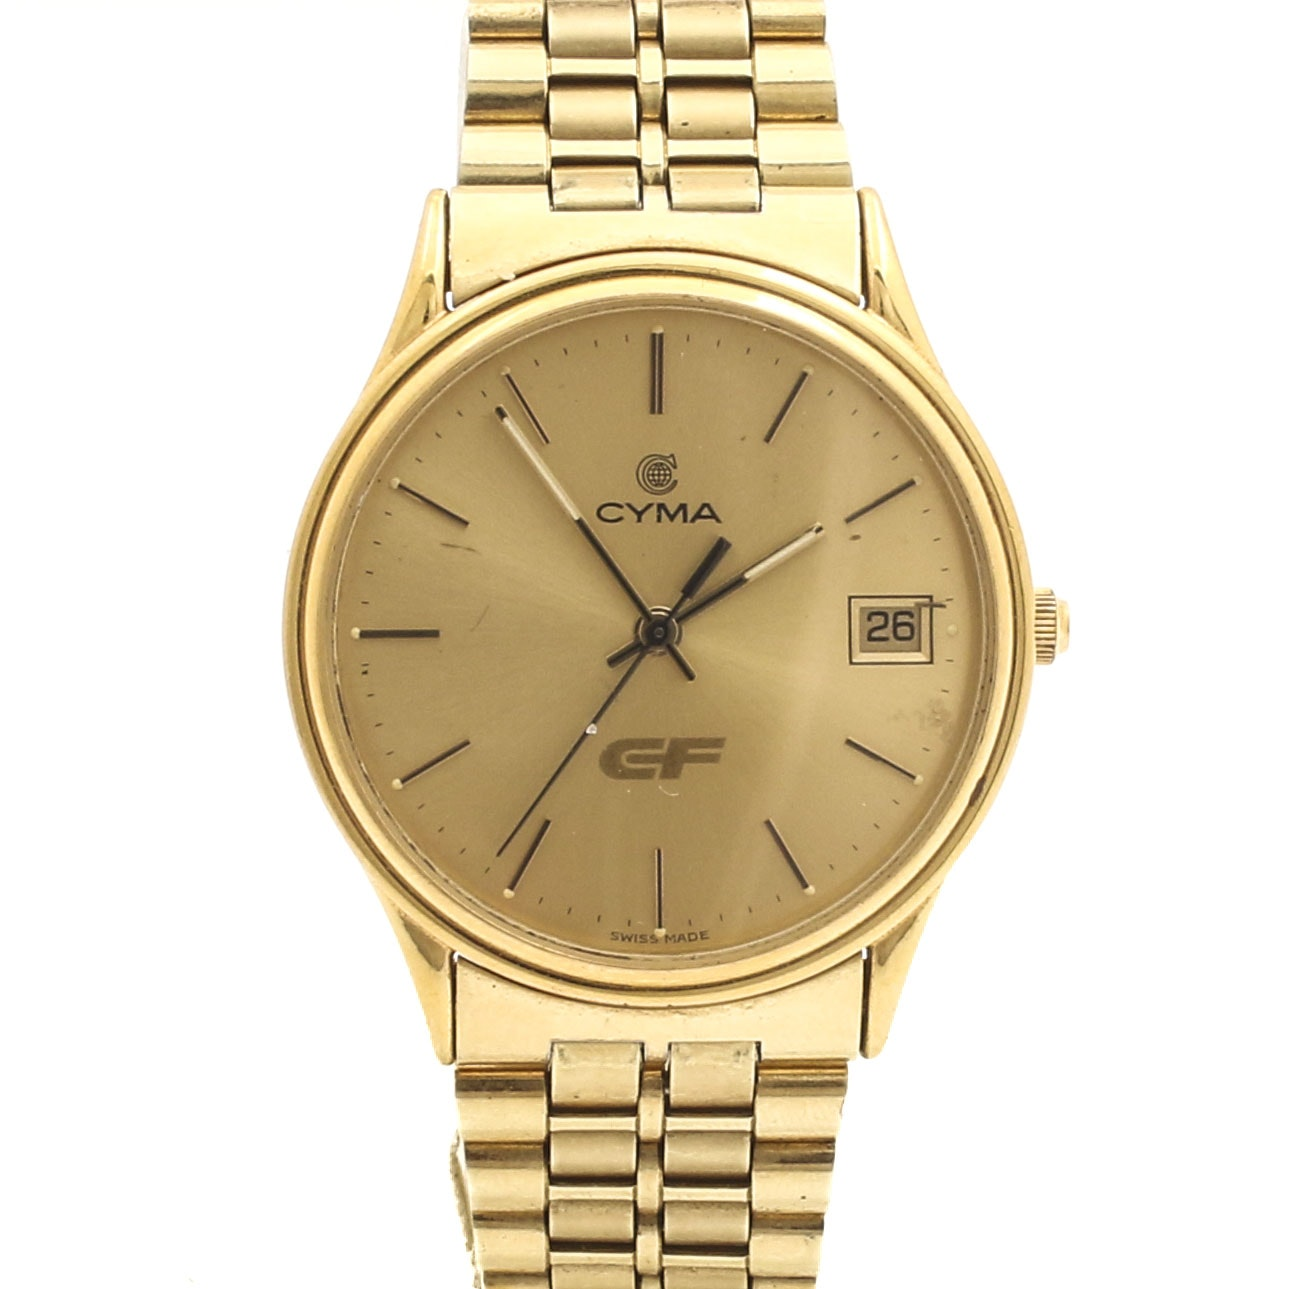 Cyma CF Gold-Tone Wristwatch